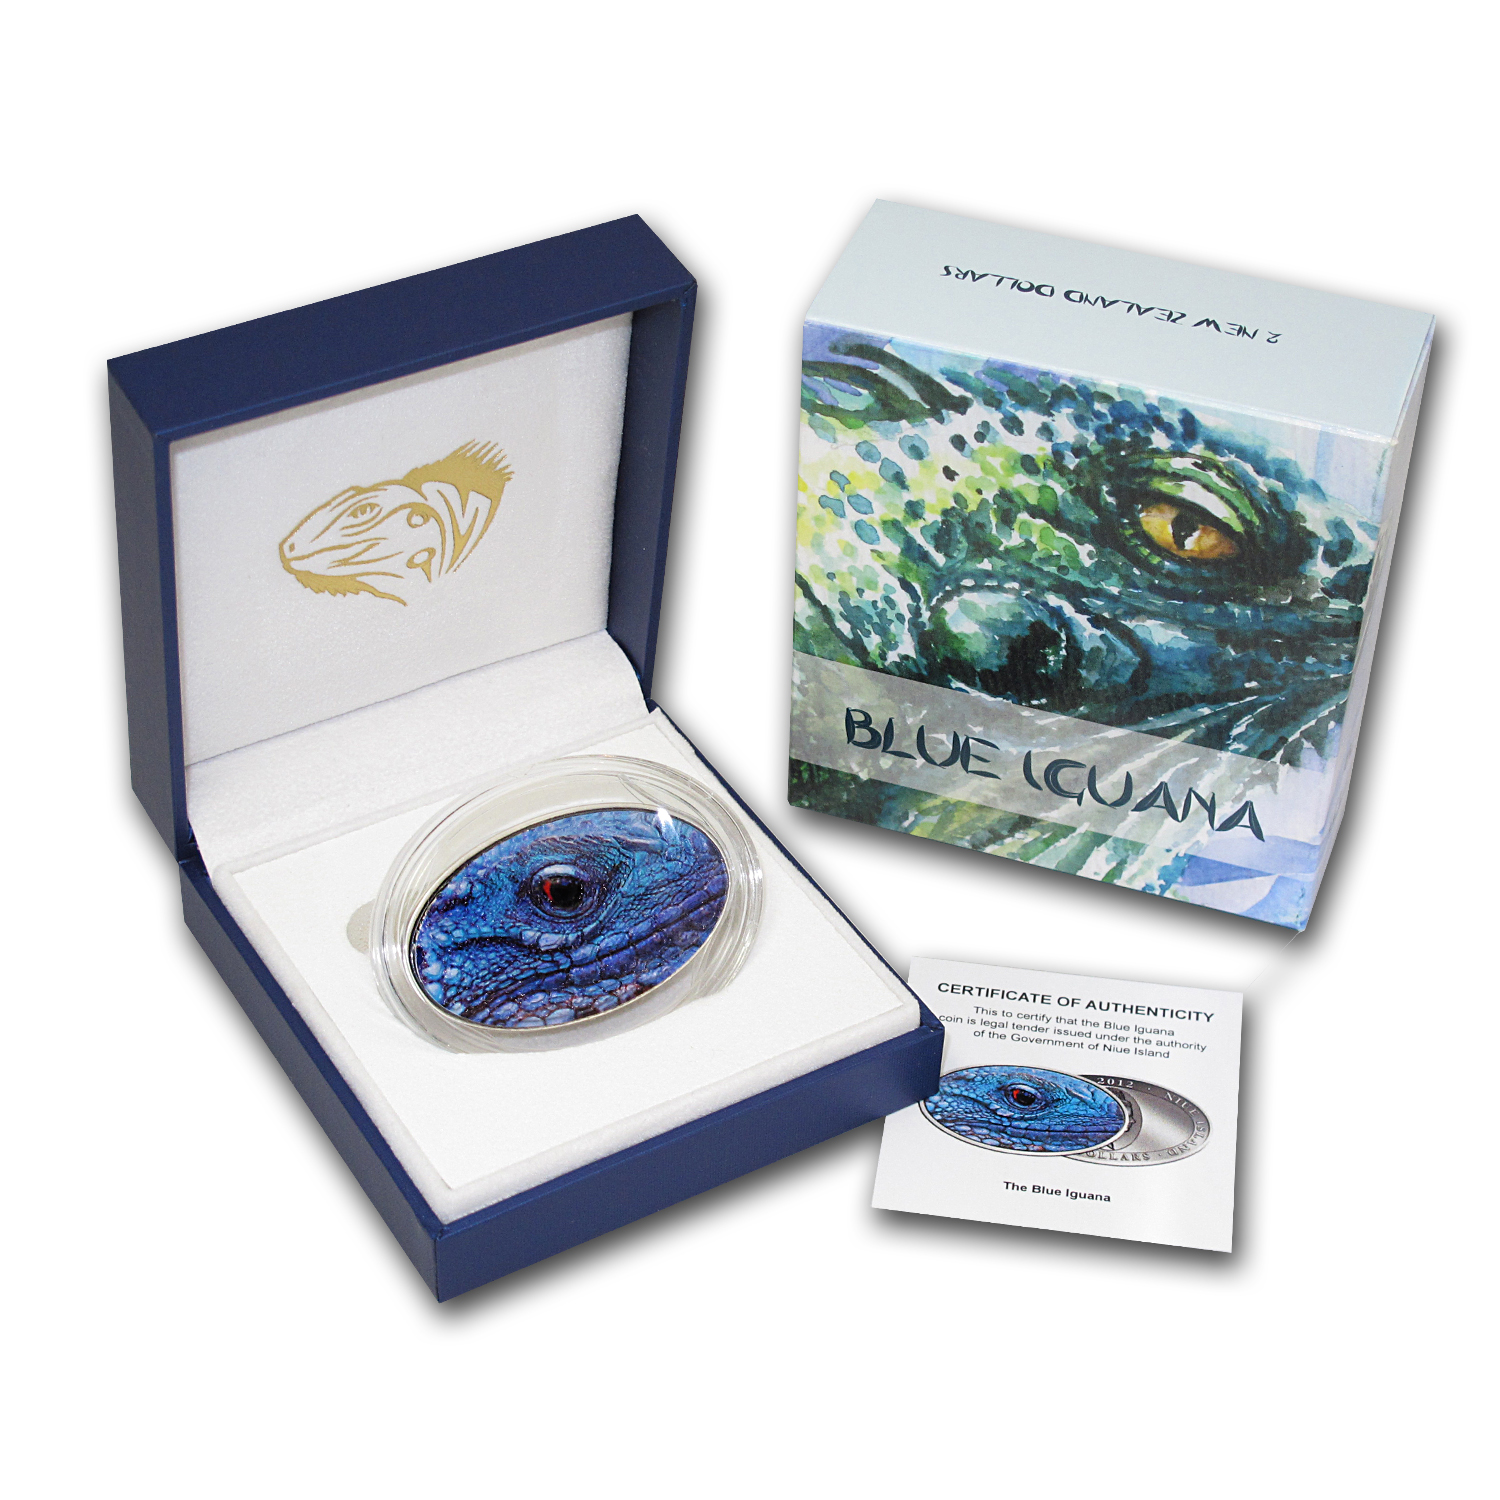 2012 Niue Silver $2 XL Ultra High Relief Blue Iguana